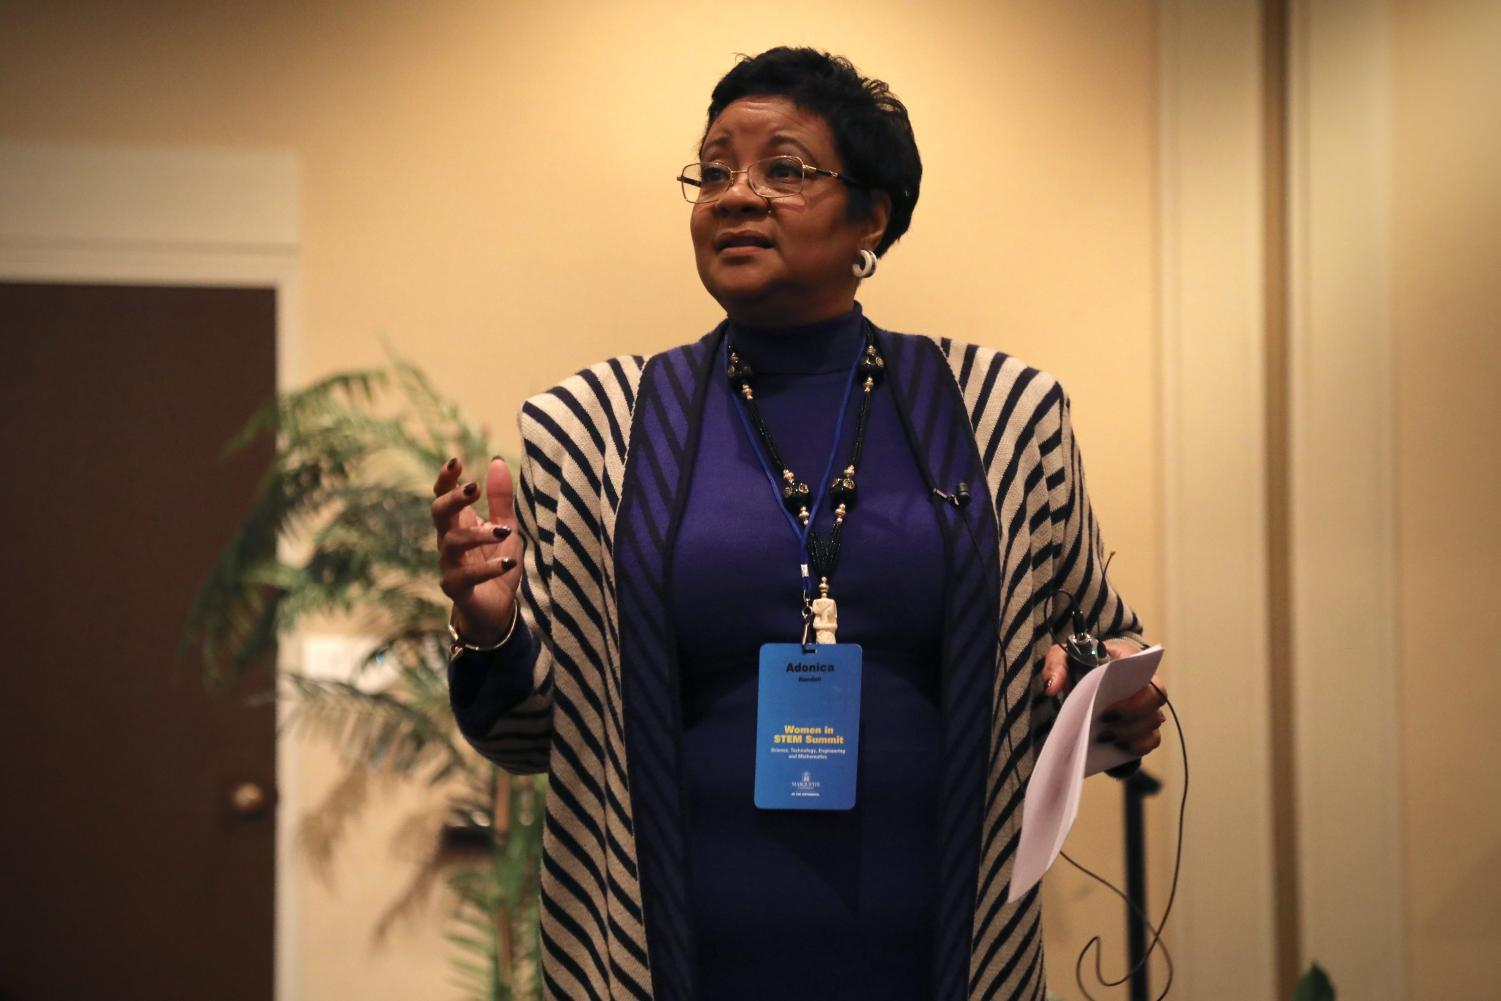 Adonica Randall, a Marquette alumna and the College of Engineering entrepreneur-in-residence, speaks at the Women in STEM Summit in the AMU April 23.